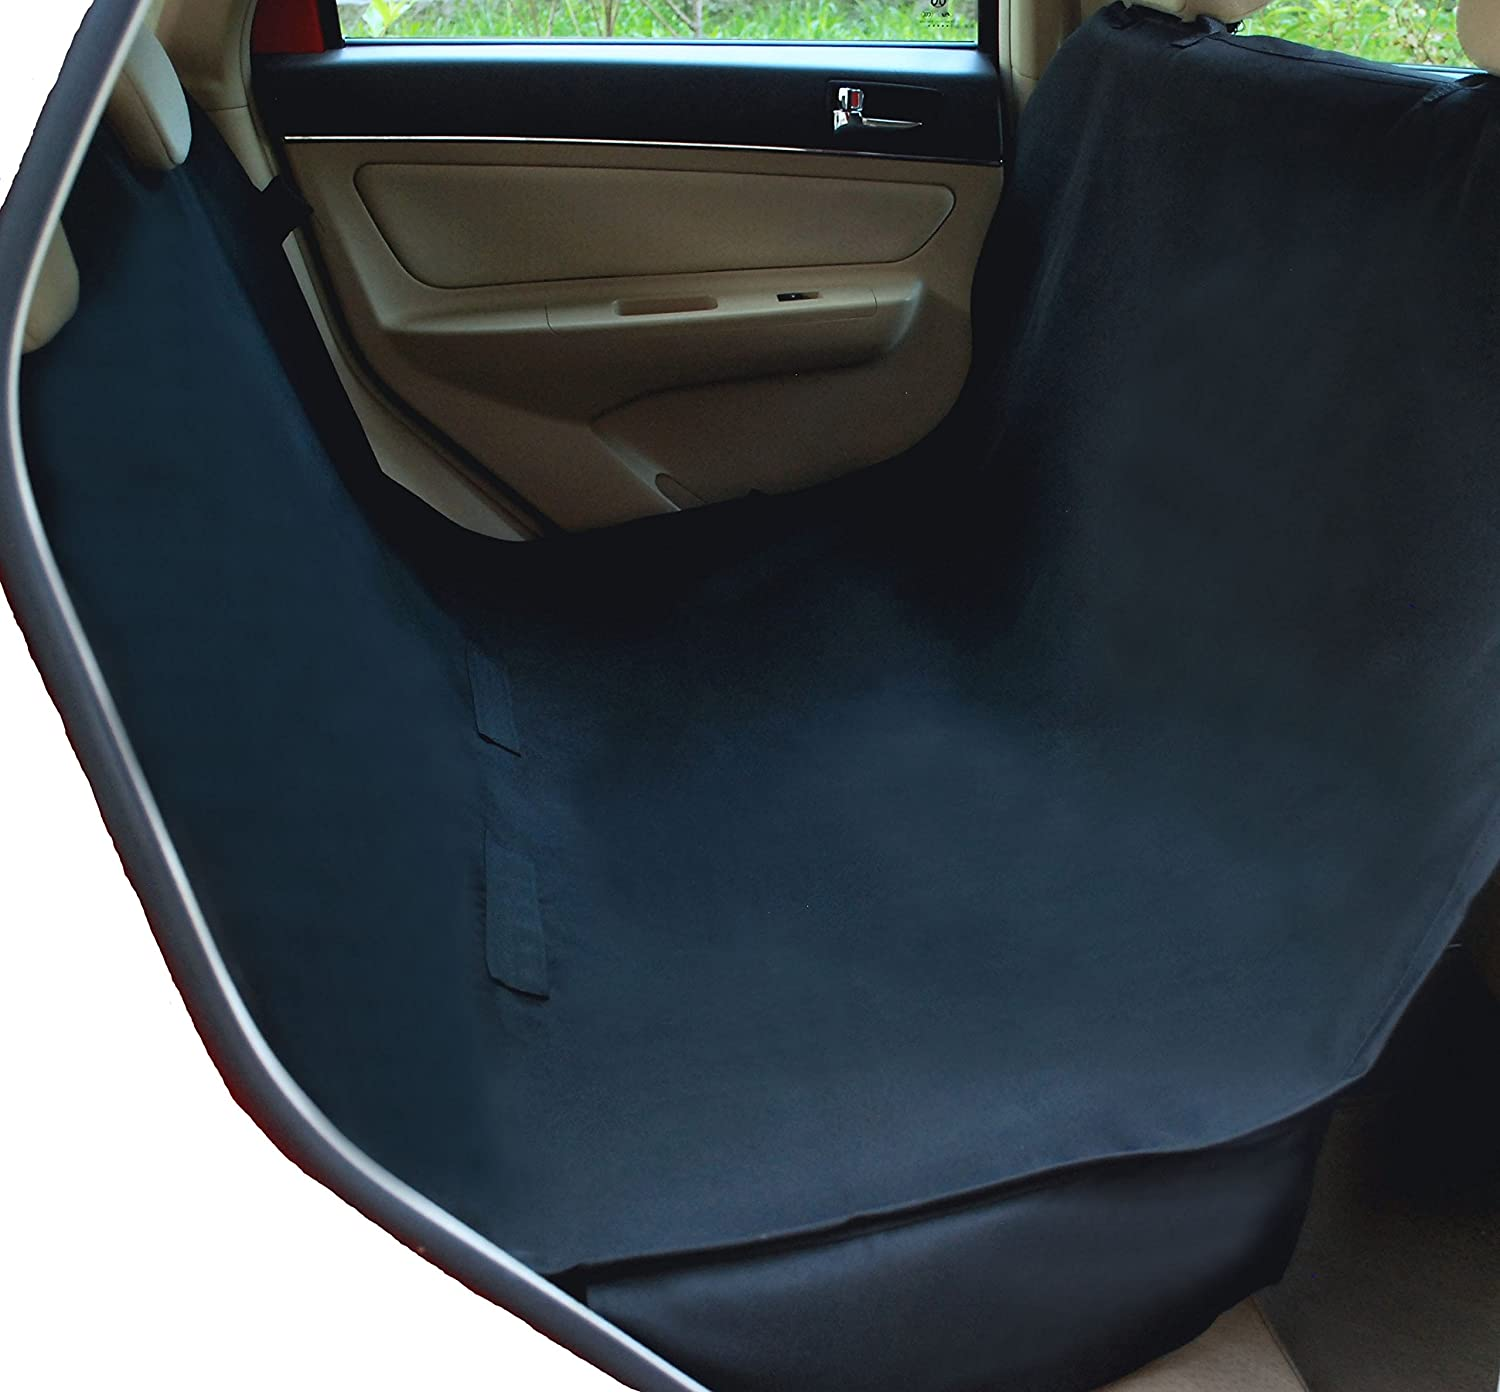 Medium image of amazon     nac u0026zac waterproof hammock pet seat cover for cars and suv with seat anchors nonslip extra side flaps machine washable barrier dog seat